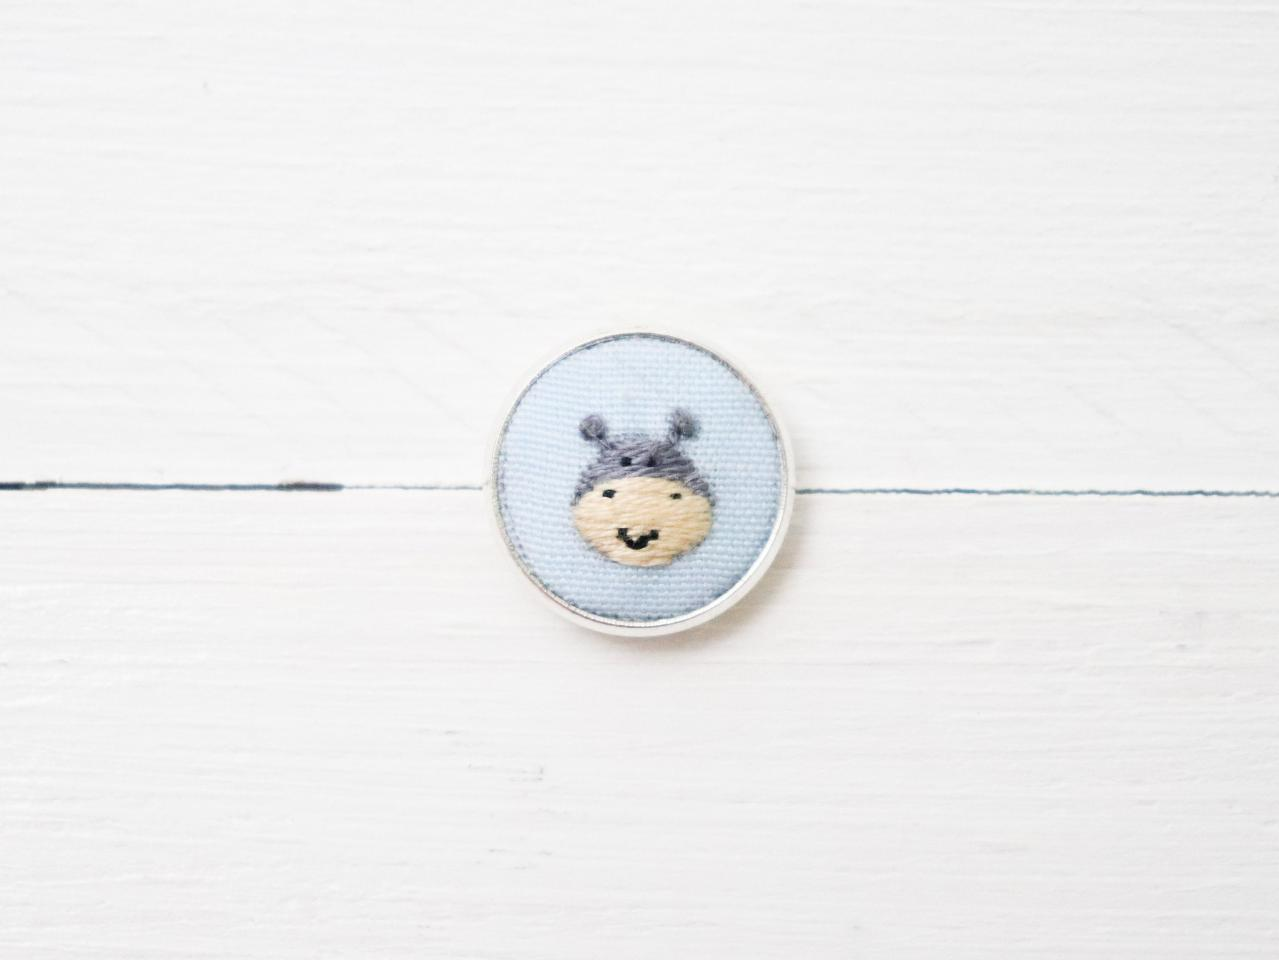 Miniature embroidery pin Hippo brooch Hippo pin Embroidery pin Hand embroidery Embroidered pin Animal pin Animal brooch Hippo collar pin